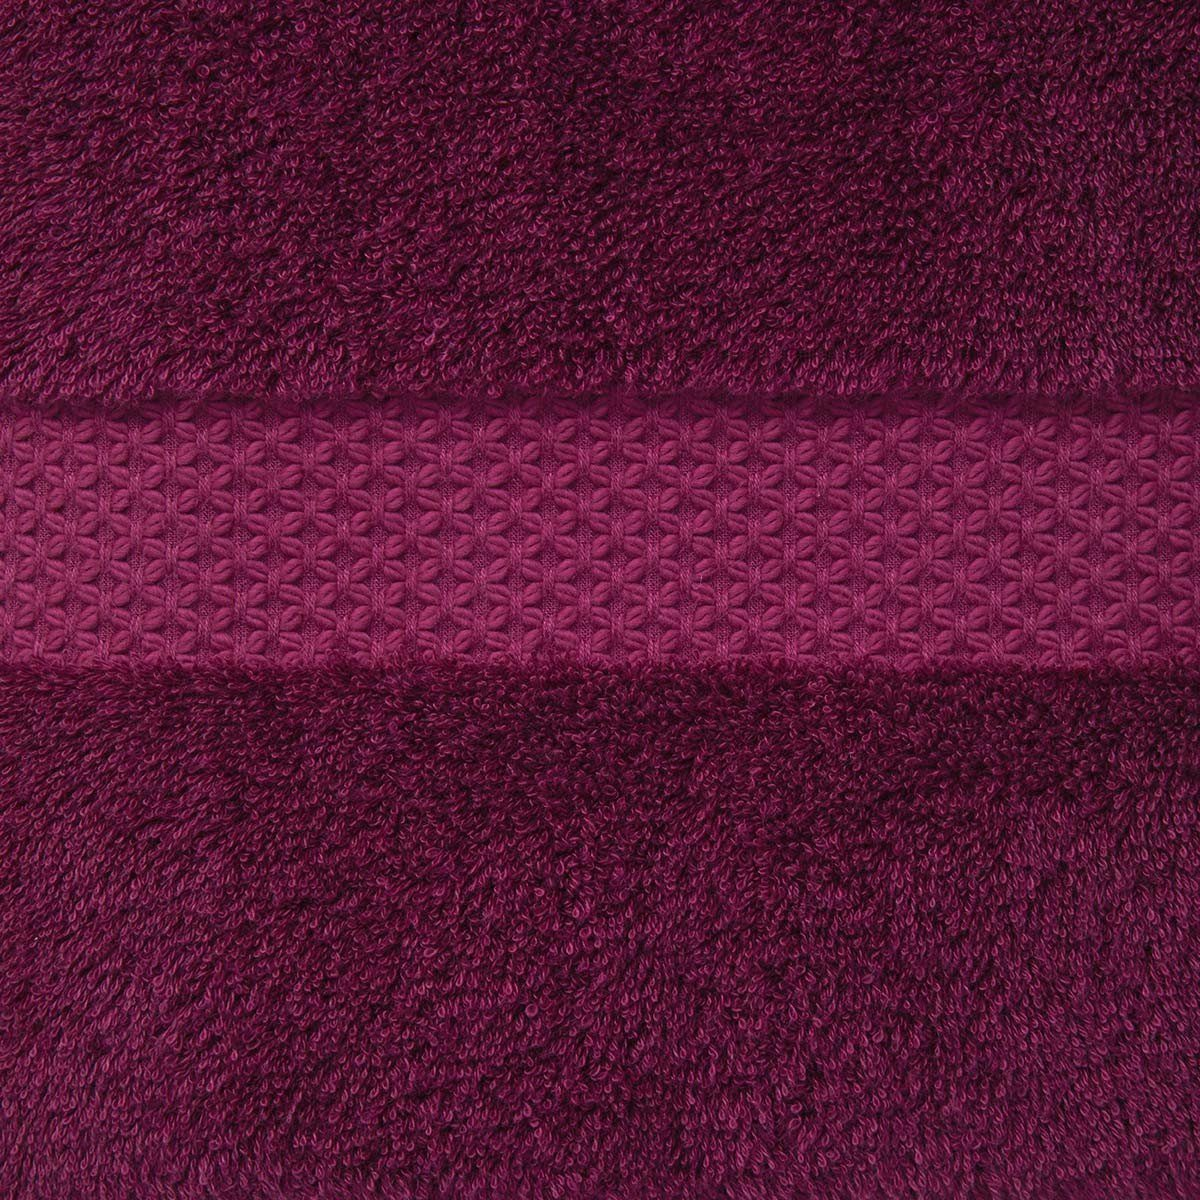 Fig Linens - Etoile Cerise Cranberry Towels with Dobby by Yves Delorme